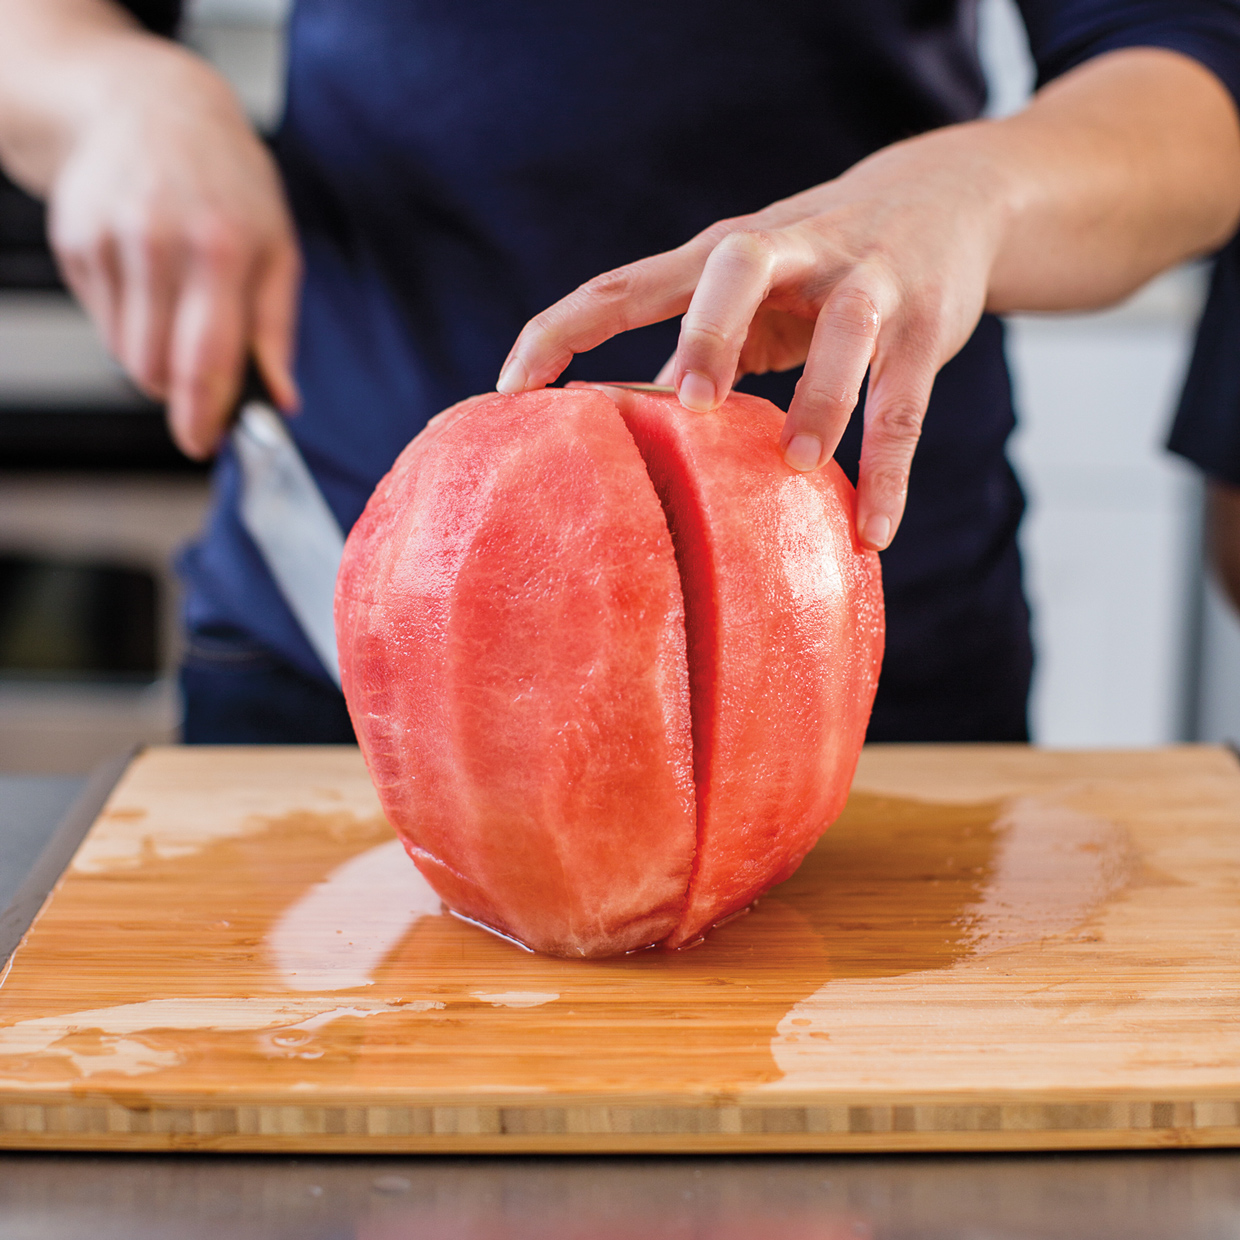 KitchenSkills_How_to_cut_a_melon-42